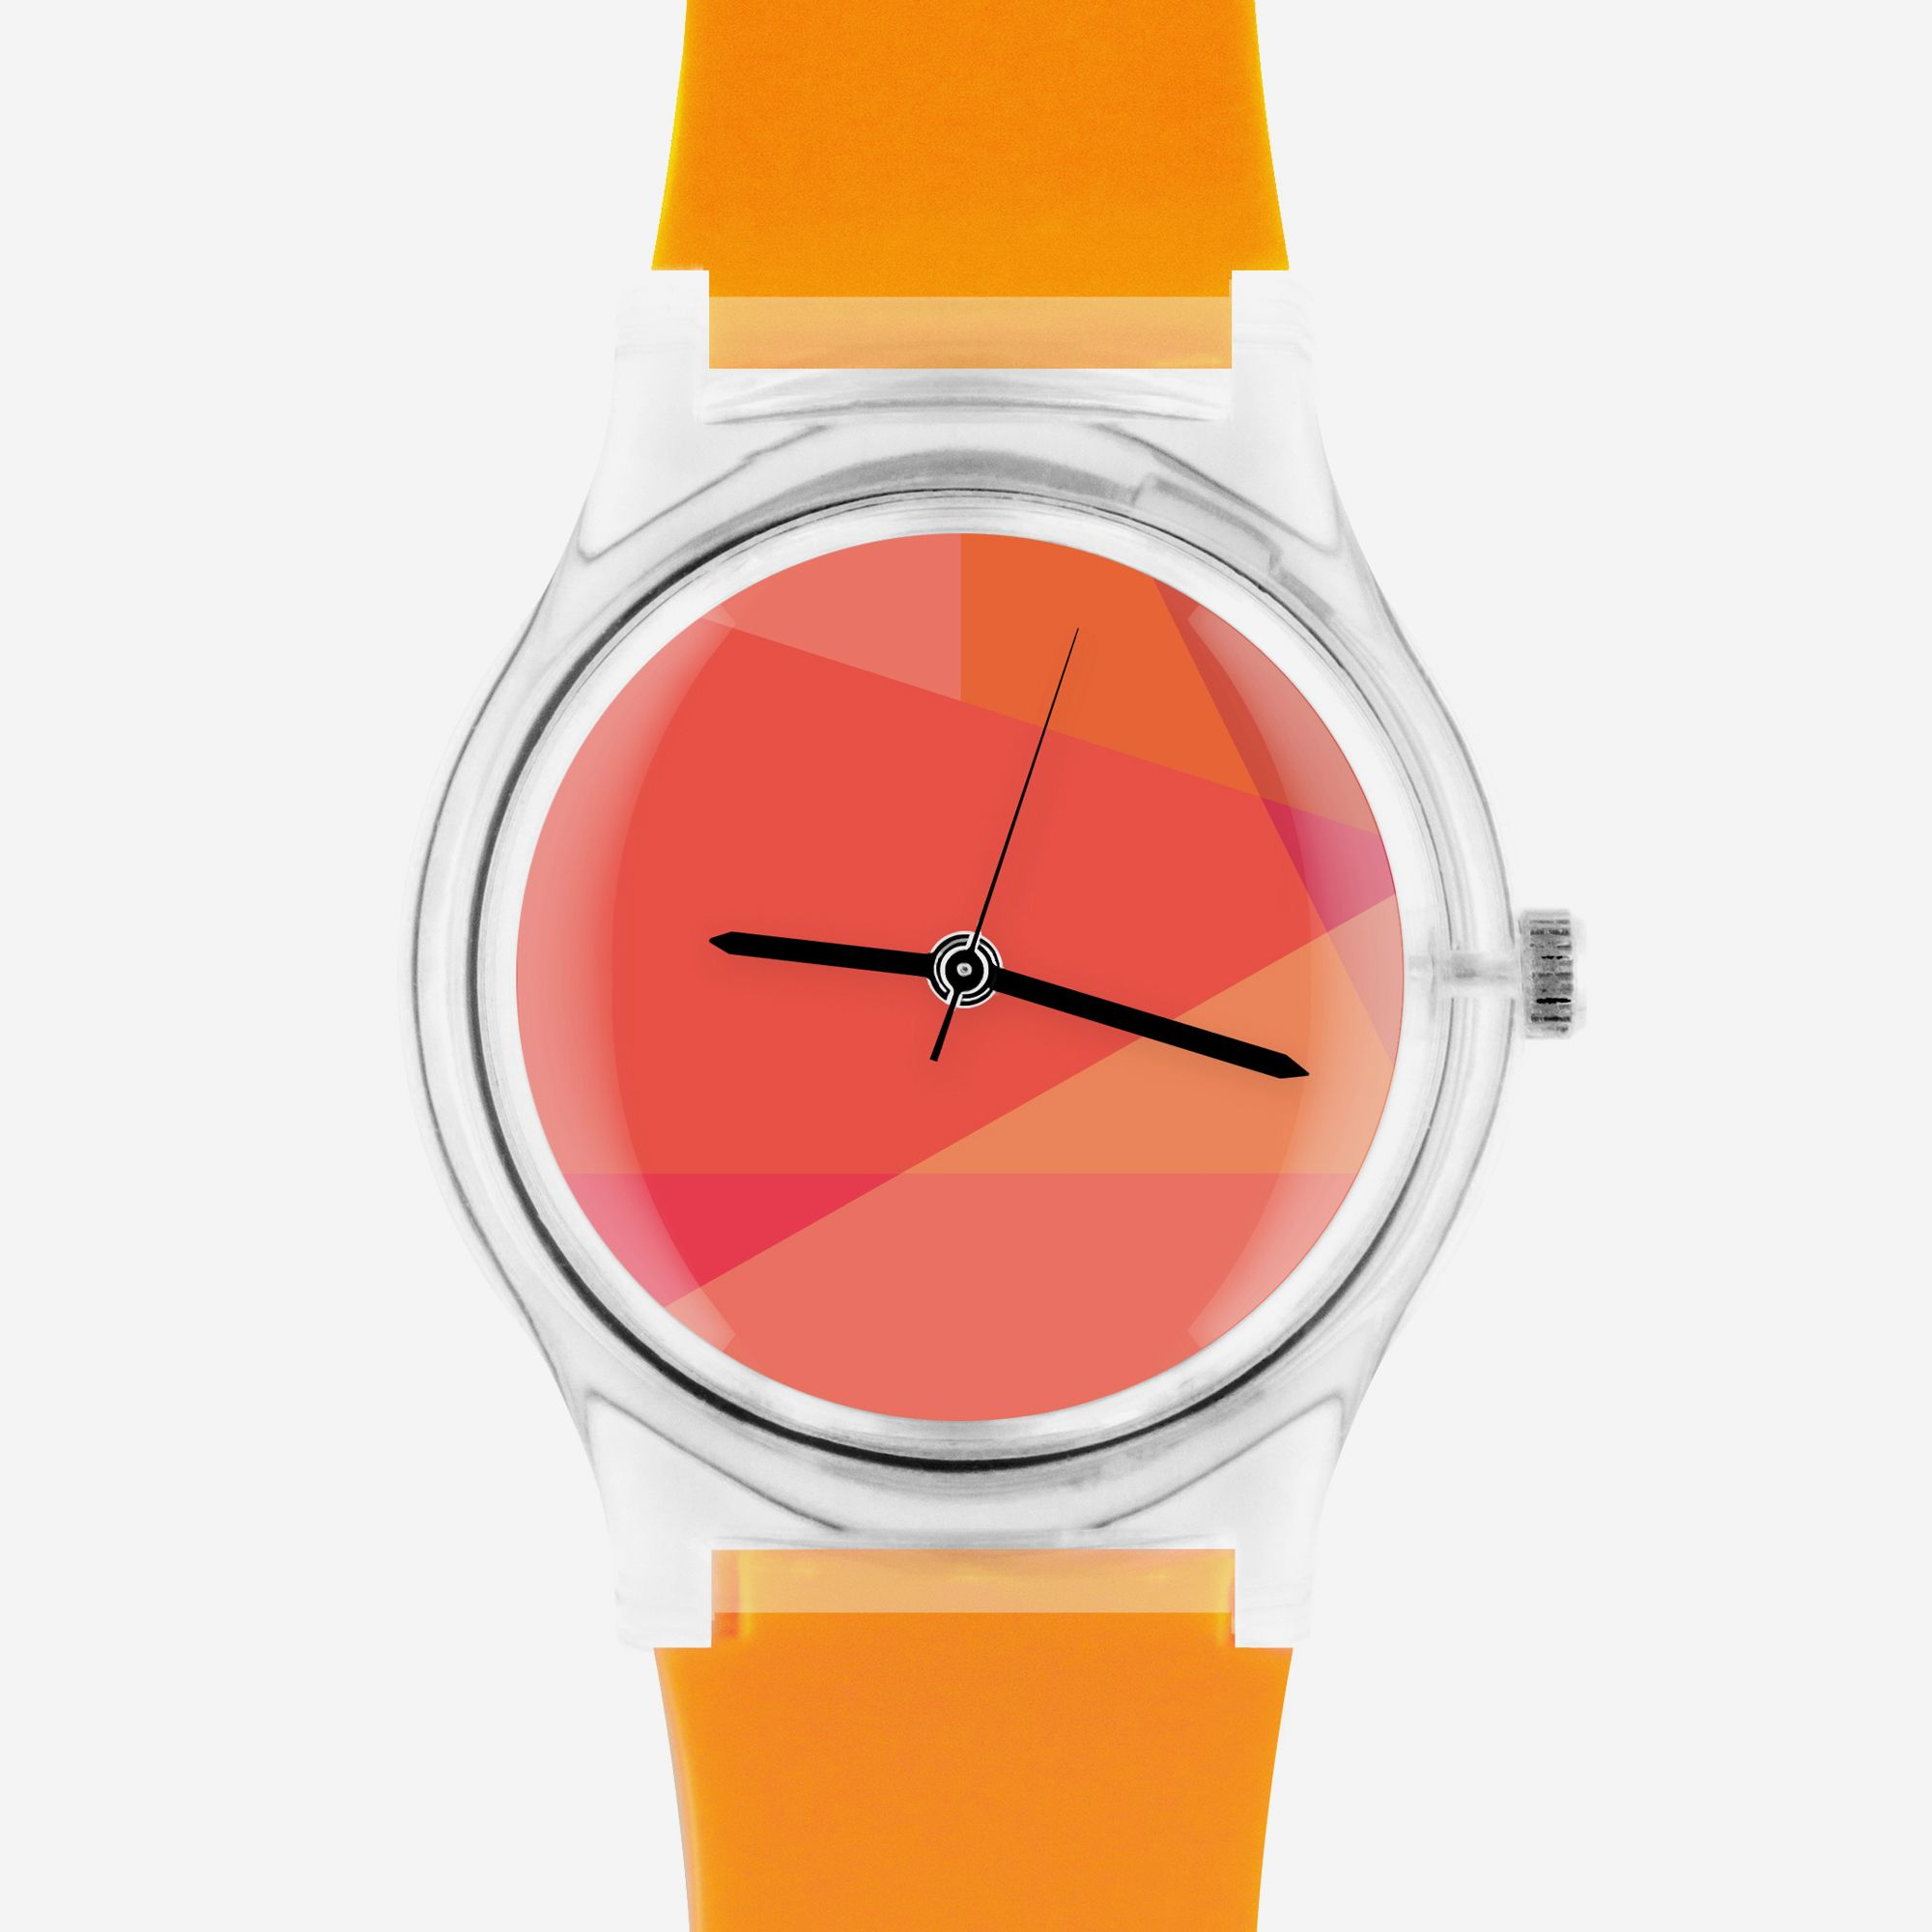 """May28th is an accessories brand dedicated to creating fun, affordable watches for men and women. May28th's distinctive aesthetic combines unexpected uses of pattern, texture and color. These eye-catching timepieces offer a vibrant, graphic pop to your everyday style.  Material: Plastic  Size: watch face (1.2"""" / 3 cm); band (9.5"""" / 23 cm) Battery Included Water resistant"""